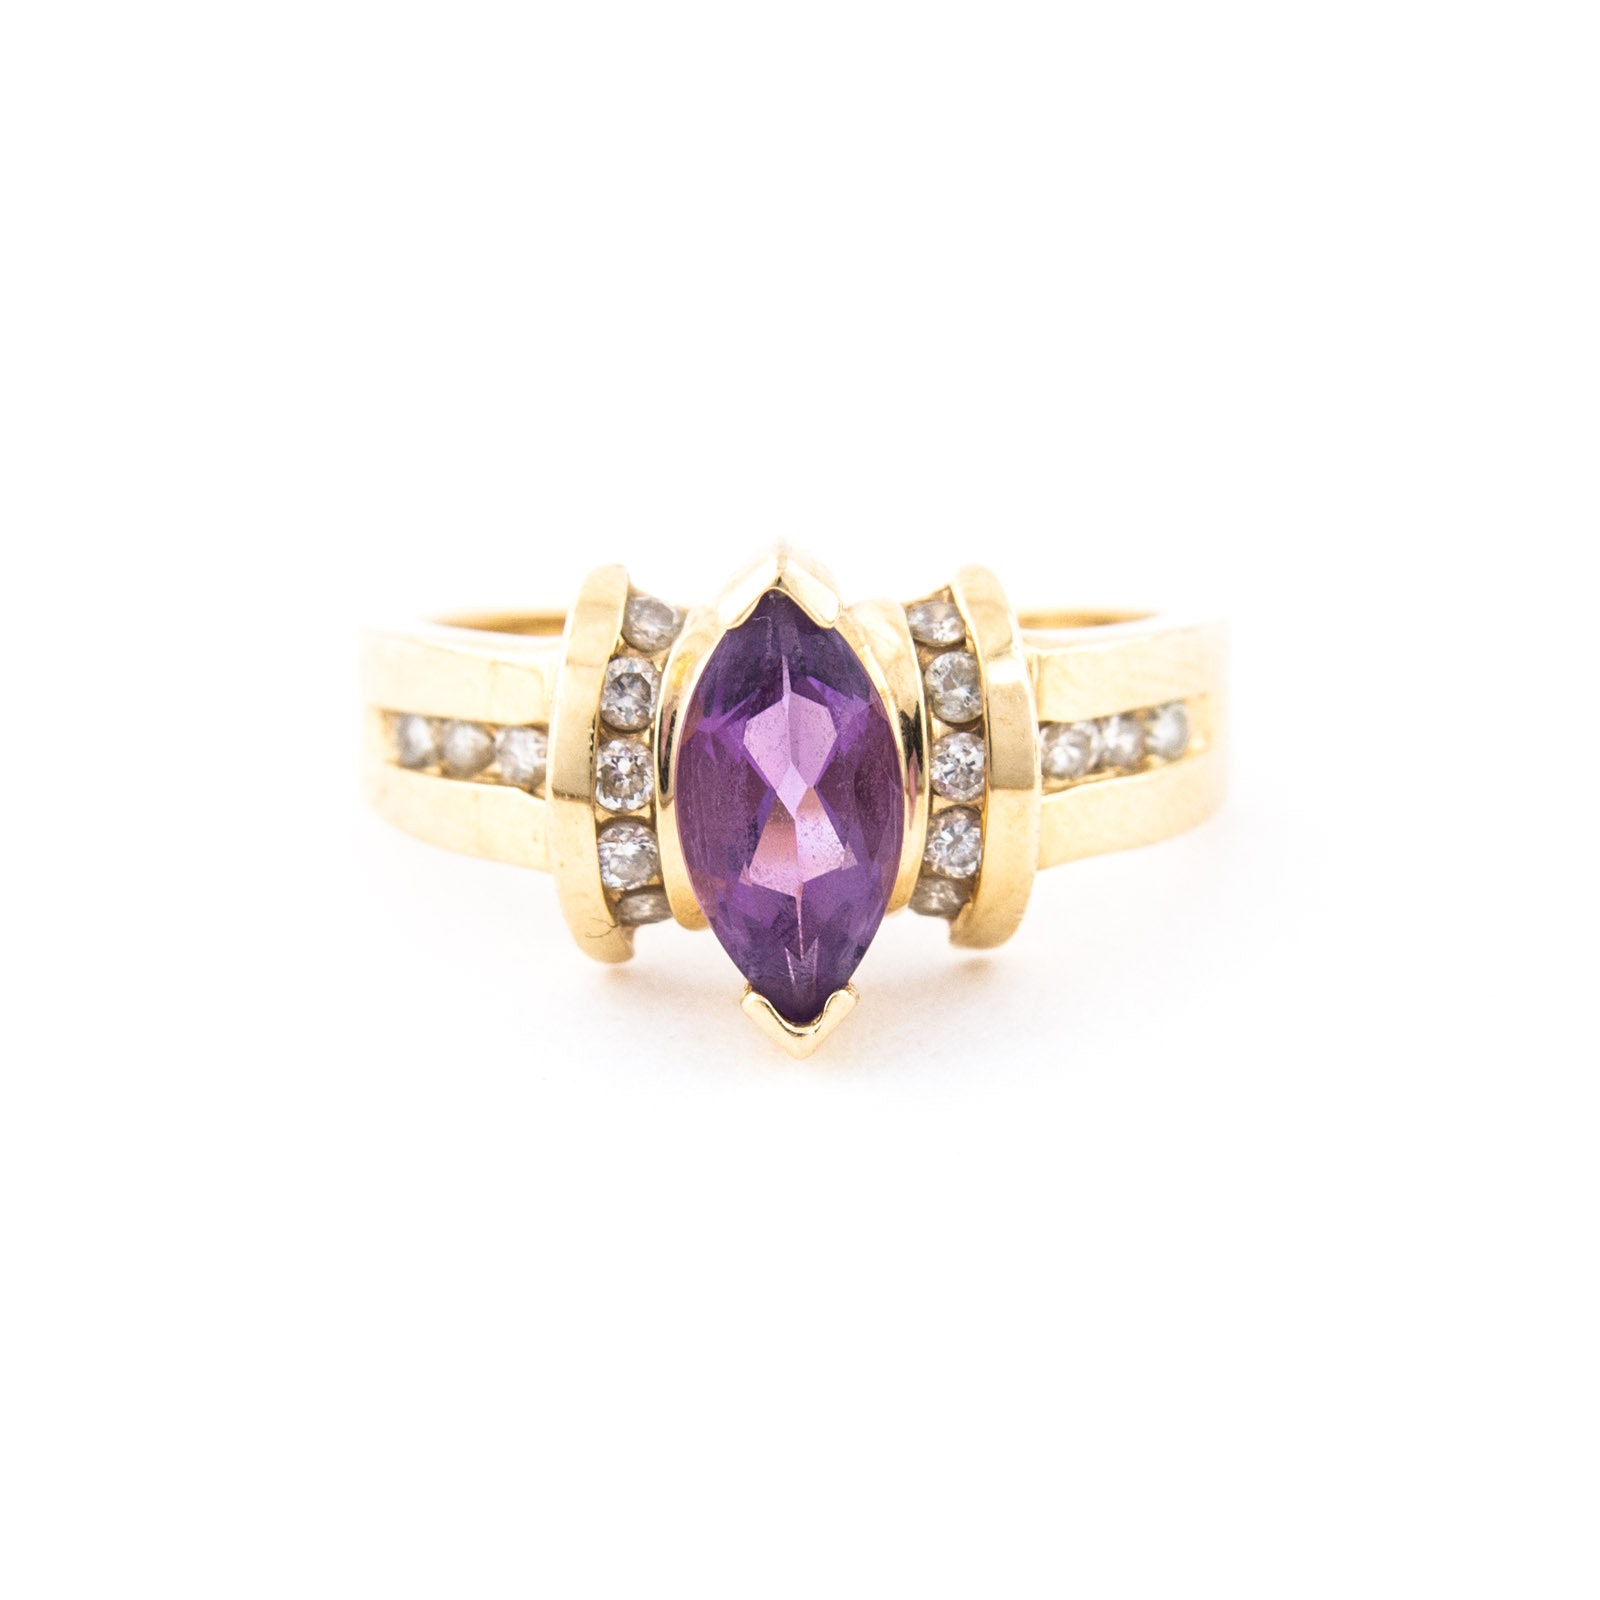 14K Yellow Gold, Amethyst, and Diamond Ring